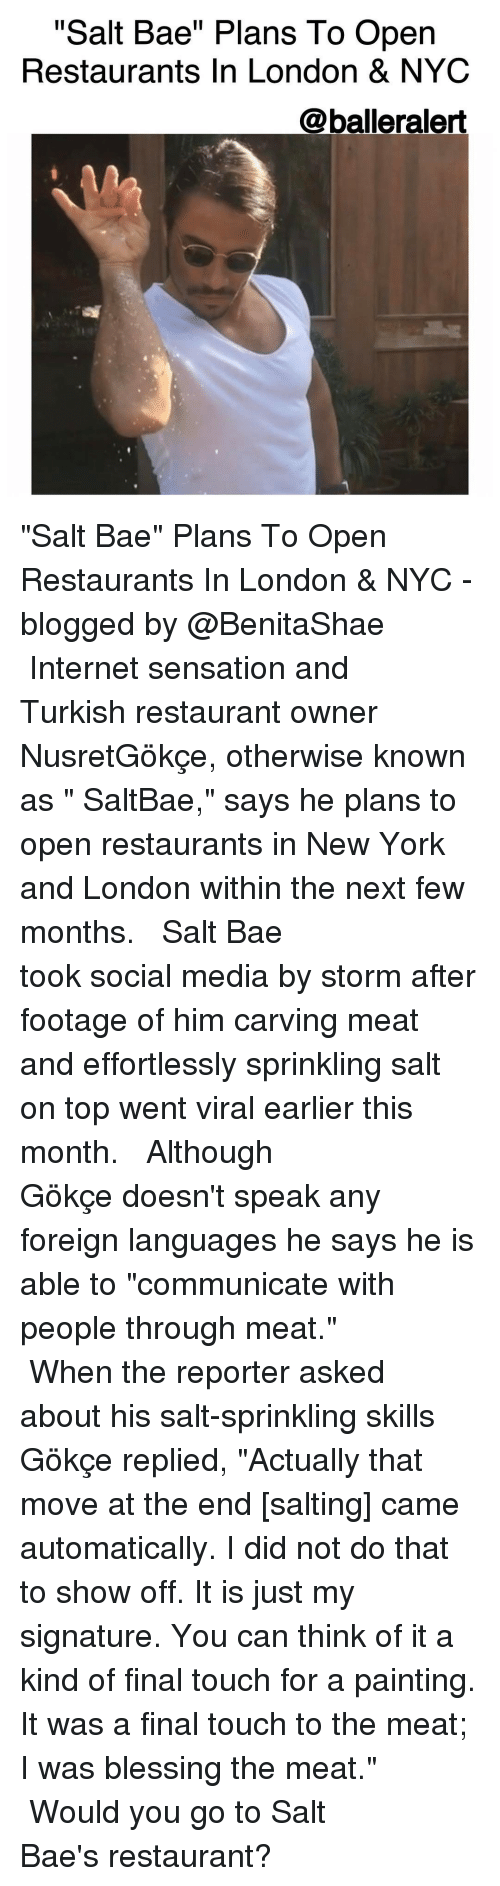 "Saltbae: ""Salt Bae"" Plans To Open  Restaurants In London & NYC  @balleralert ""Salt Bae"" Plans To Open Restaurants In London & NYC -blogged by @BenitaShae ⠀⠀⠀⠀⠀⠀⠀⠀⠀ ⠀⠀⠀⠀⠀⠀⠀⠀⠀ Internet sensation and Turkish restaurant owner NusretGökçe, otherwise known as "" SaltBae,"" says he plans to open restaurants in New York and London within the next few months. ⠀⠀⠀⠀⠀⠀⠀⠀⠀ ⠀⠀⠀⠀⠀⠀⠀⠀⠀ Salt Bae took social media by storm after footage of him carving meat and effortlessly sprinkling salt on top went viral earlier this month. ⠀⠀⠀⠀⠀⠀⠀⠀⠀ ⠀⠀⠀⠀⠀⠀⠀⠀⠀ Although Gökçe doesn't speak any foreign languages he says he is able to ""communicate with people through meat."" ⠀⠀⠀⠀⠀⠀⠀⠀⠀ ⠀⠀⠀⠀⠀⠀⠀⠀⠀ When the reporter asked about his salt-sprinkling skills Gökçe replied, ""Actually that move at the end [salting] came automatically. I did not do that to show off. It is just my signature. You can think of it a kind of final touch for a painting. It was a final touch to the meat; I was blessing the meat."" ⠀⠀⠀⠀⠀⠀⠀⠀⠀ ⠀⠀⠀⠀⠀⠀⠀⠀⠀ Would you go to Salt Bae's restaurant?"